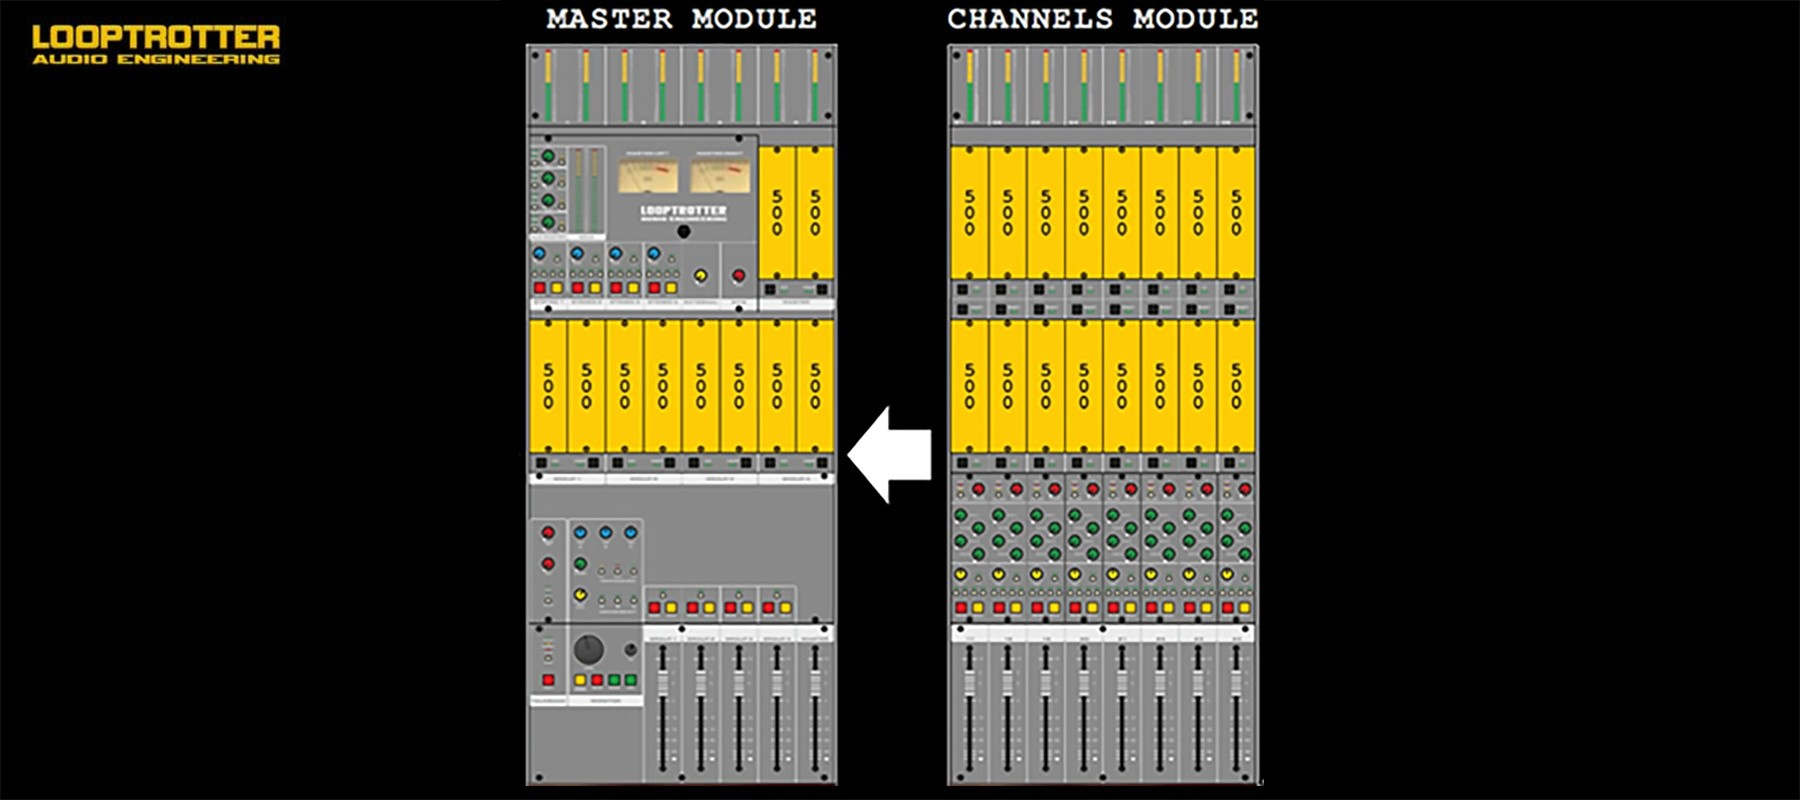 Looptrotter Modular Console 8 canaux